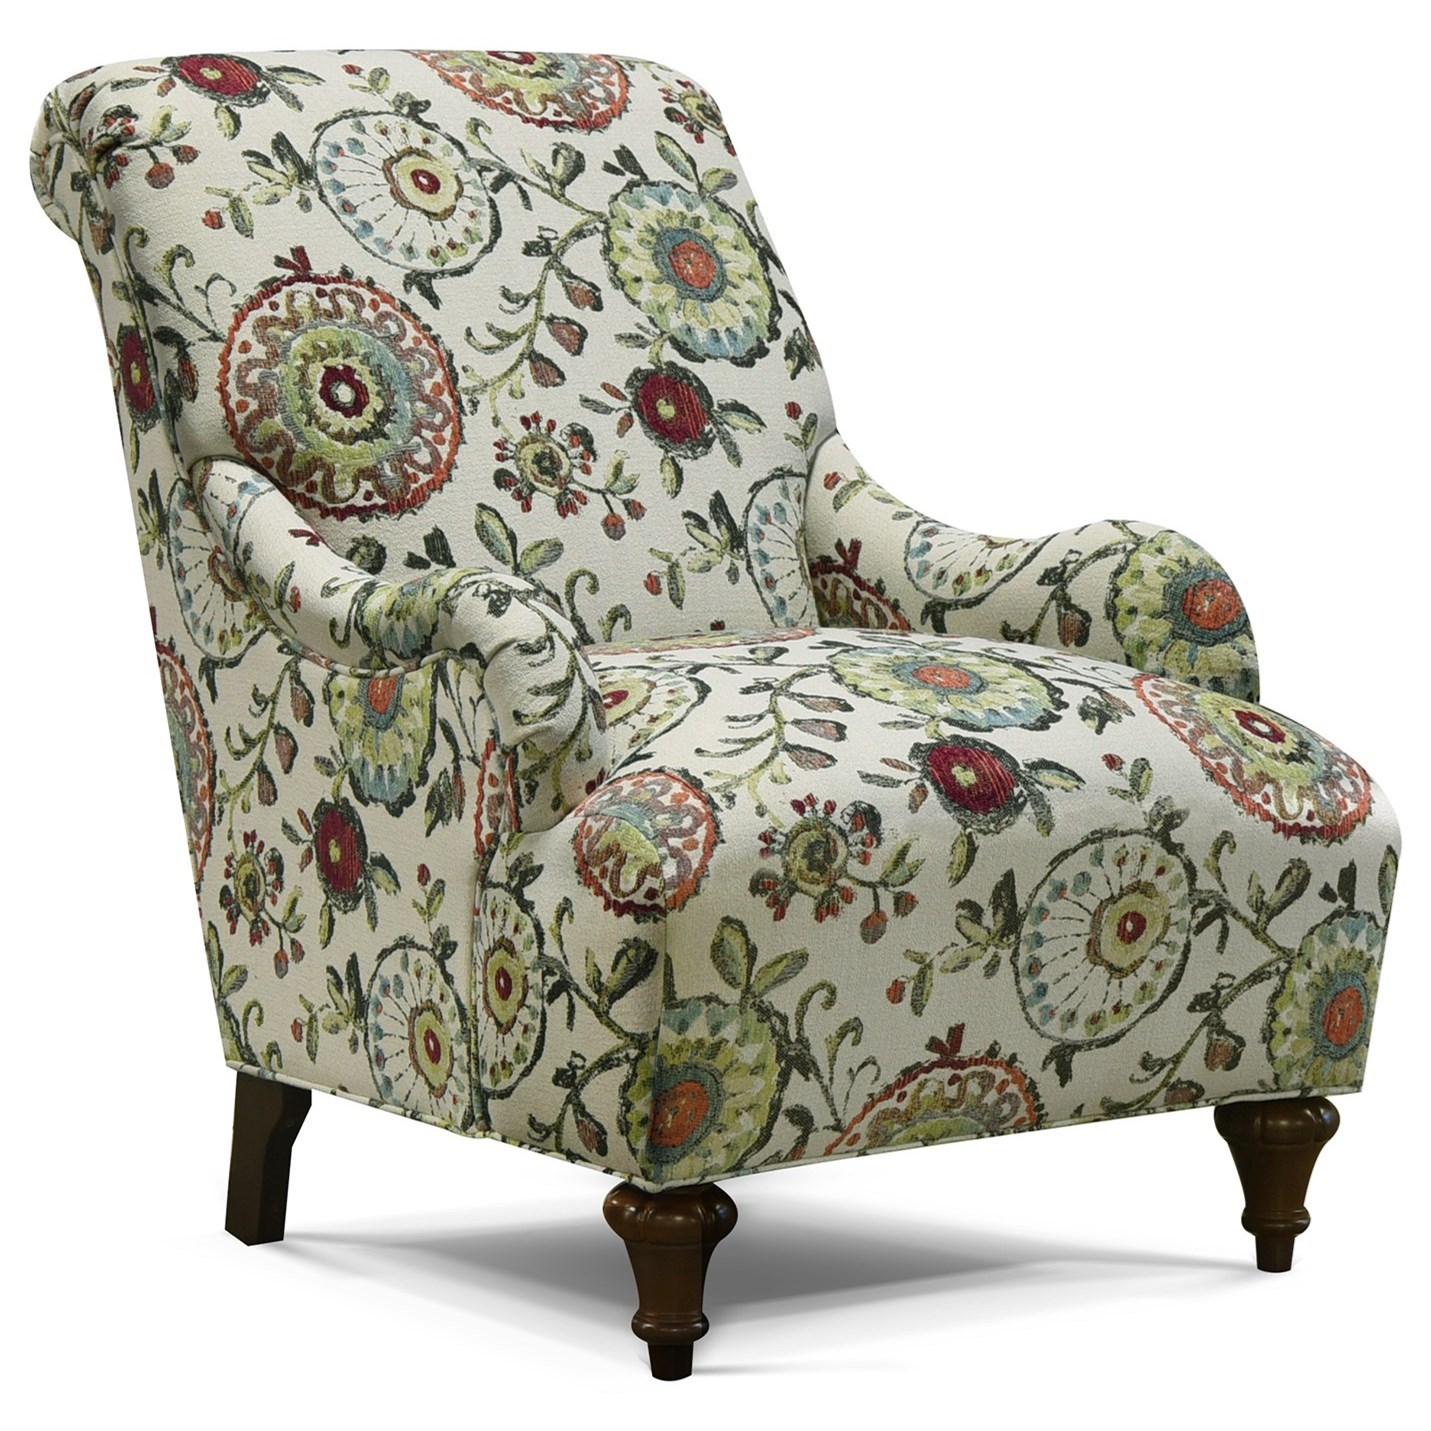 Kelsey Chair  by England at Furniture Superstore - Rochester, MN